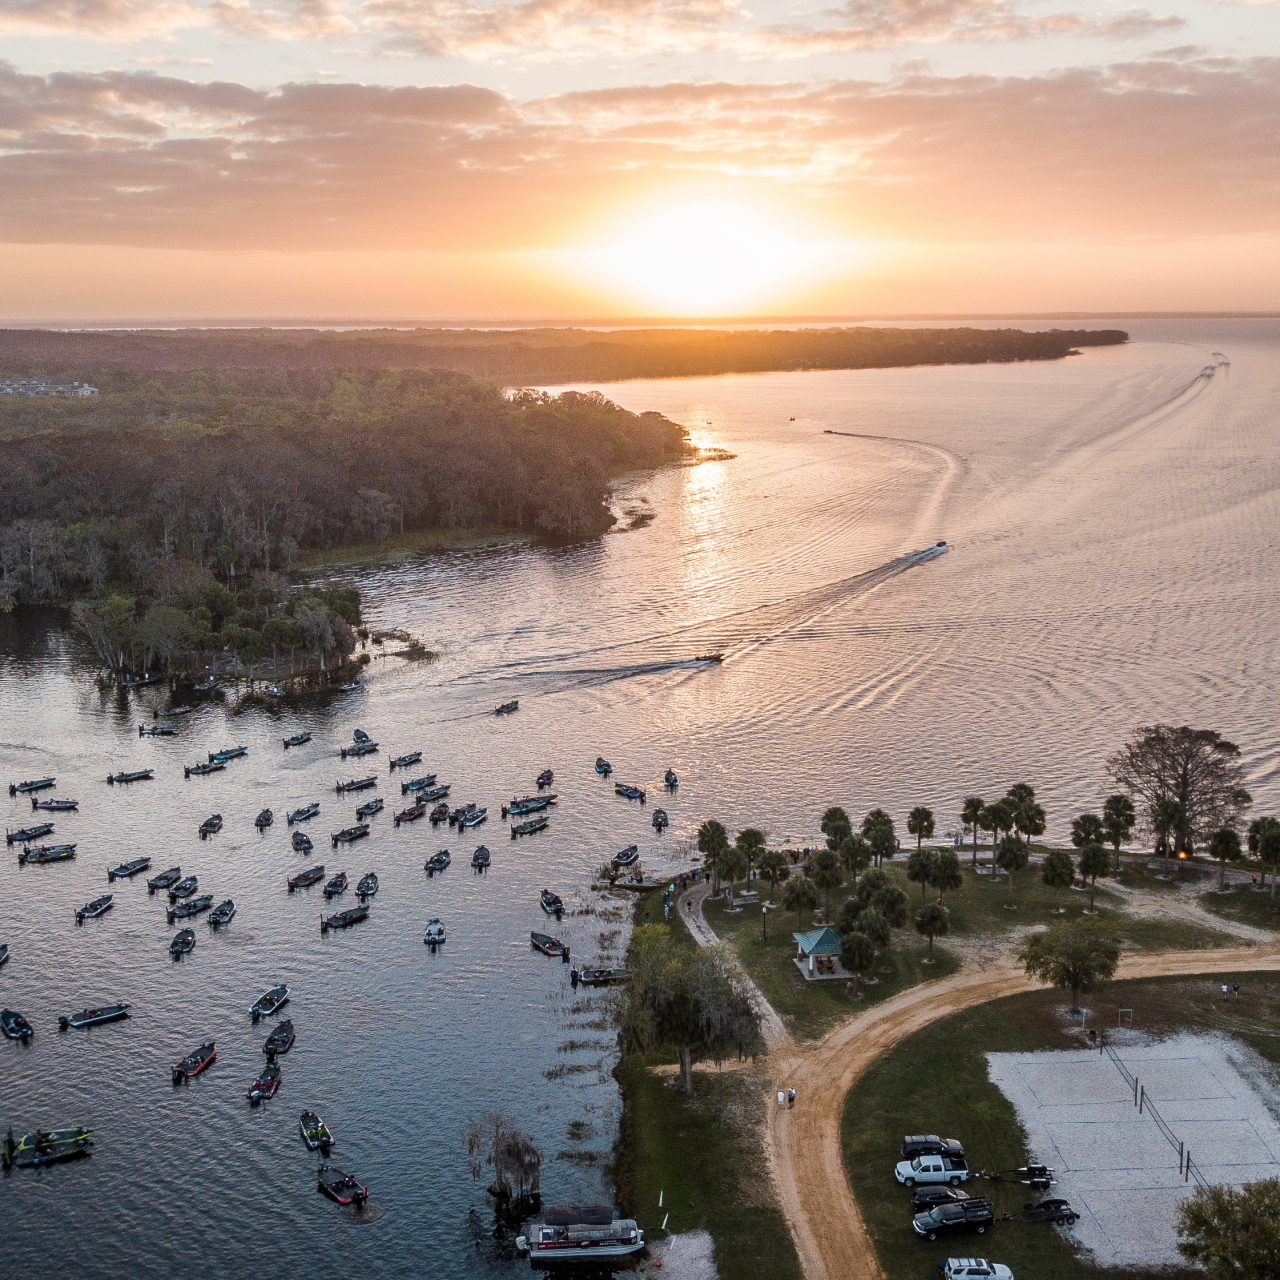 Harris Chain of Lakes selected to host 2020 FLW Tour event